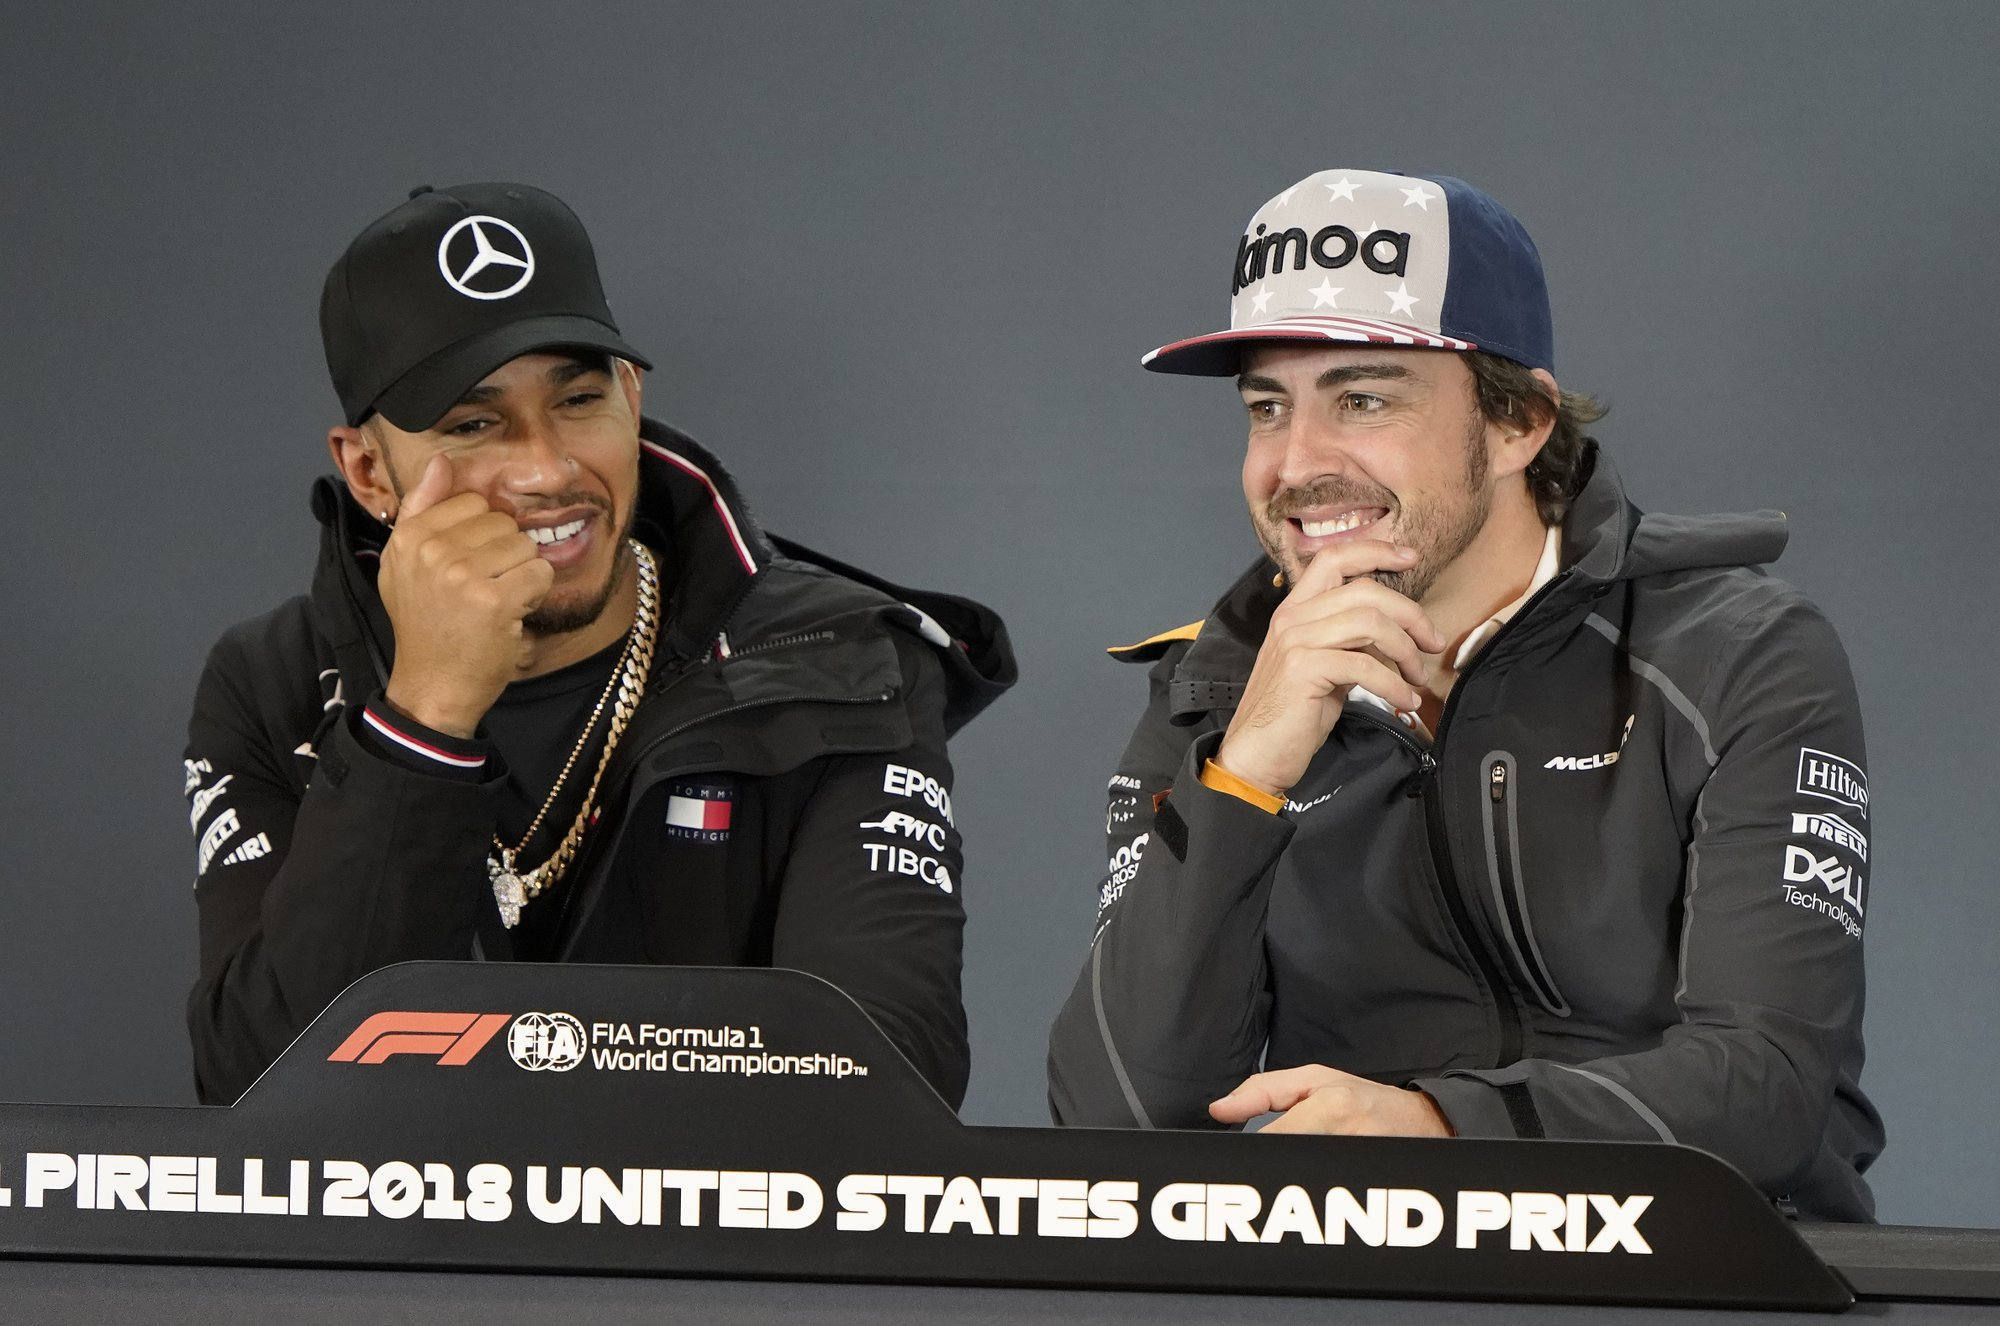 Good Chances for a win at the USA Grand Prix